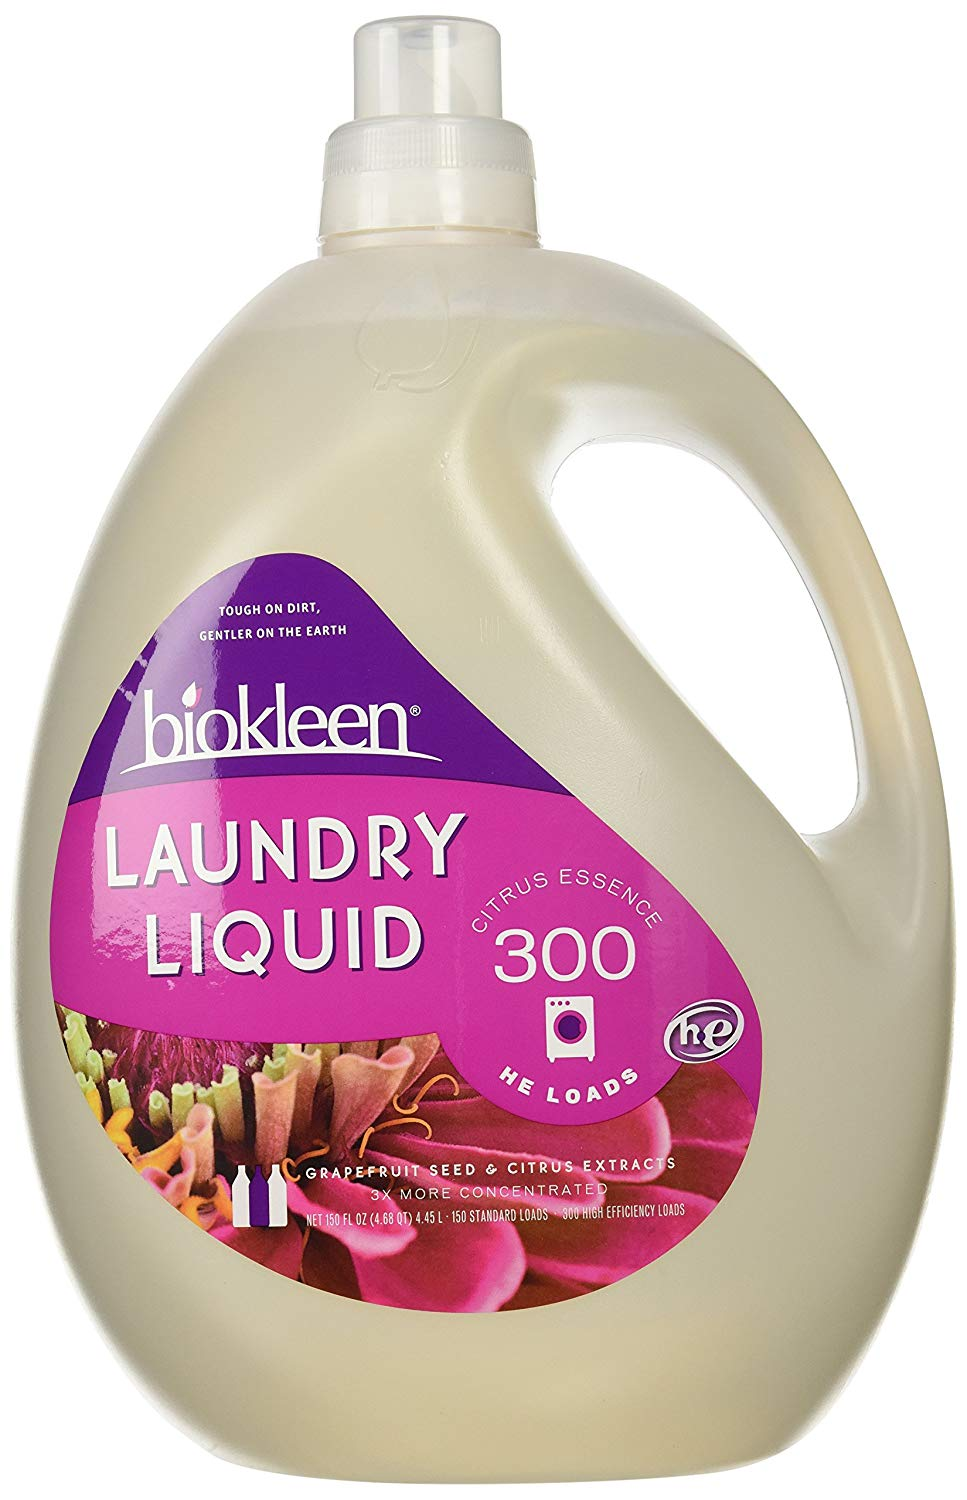 Laundry Detergent Liquid (150 oz) - My Simple Changes